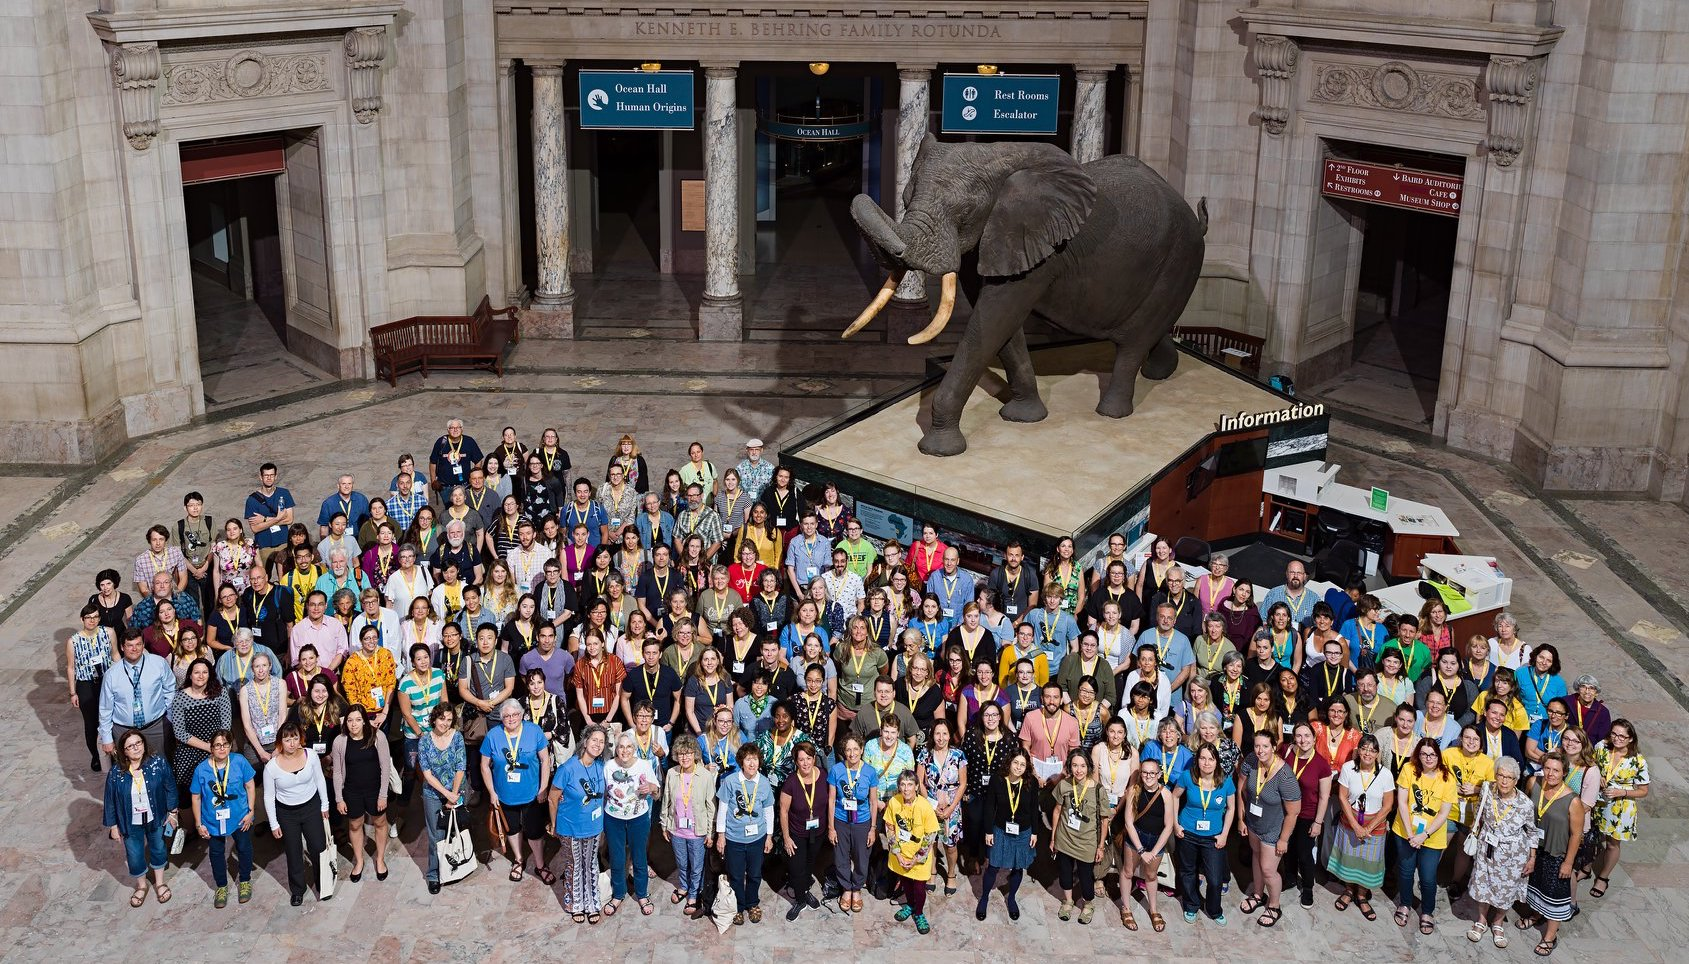 50th Anniversary Conference Group Photo at the Smithsonian National Museum of Natural History. Photo Credit: James Di Loreto, Kate D. Sherwood, and Lucia RM Martino, Smithsonian Institution